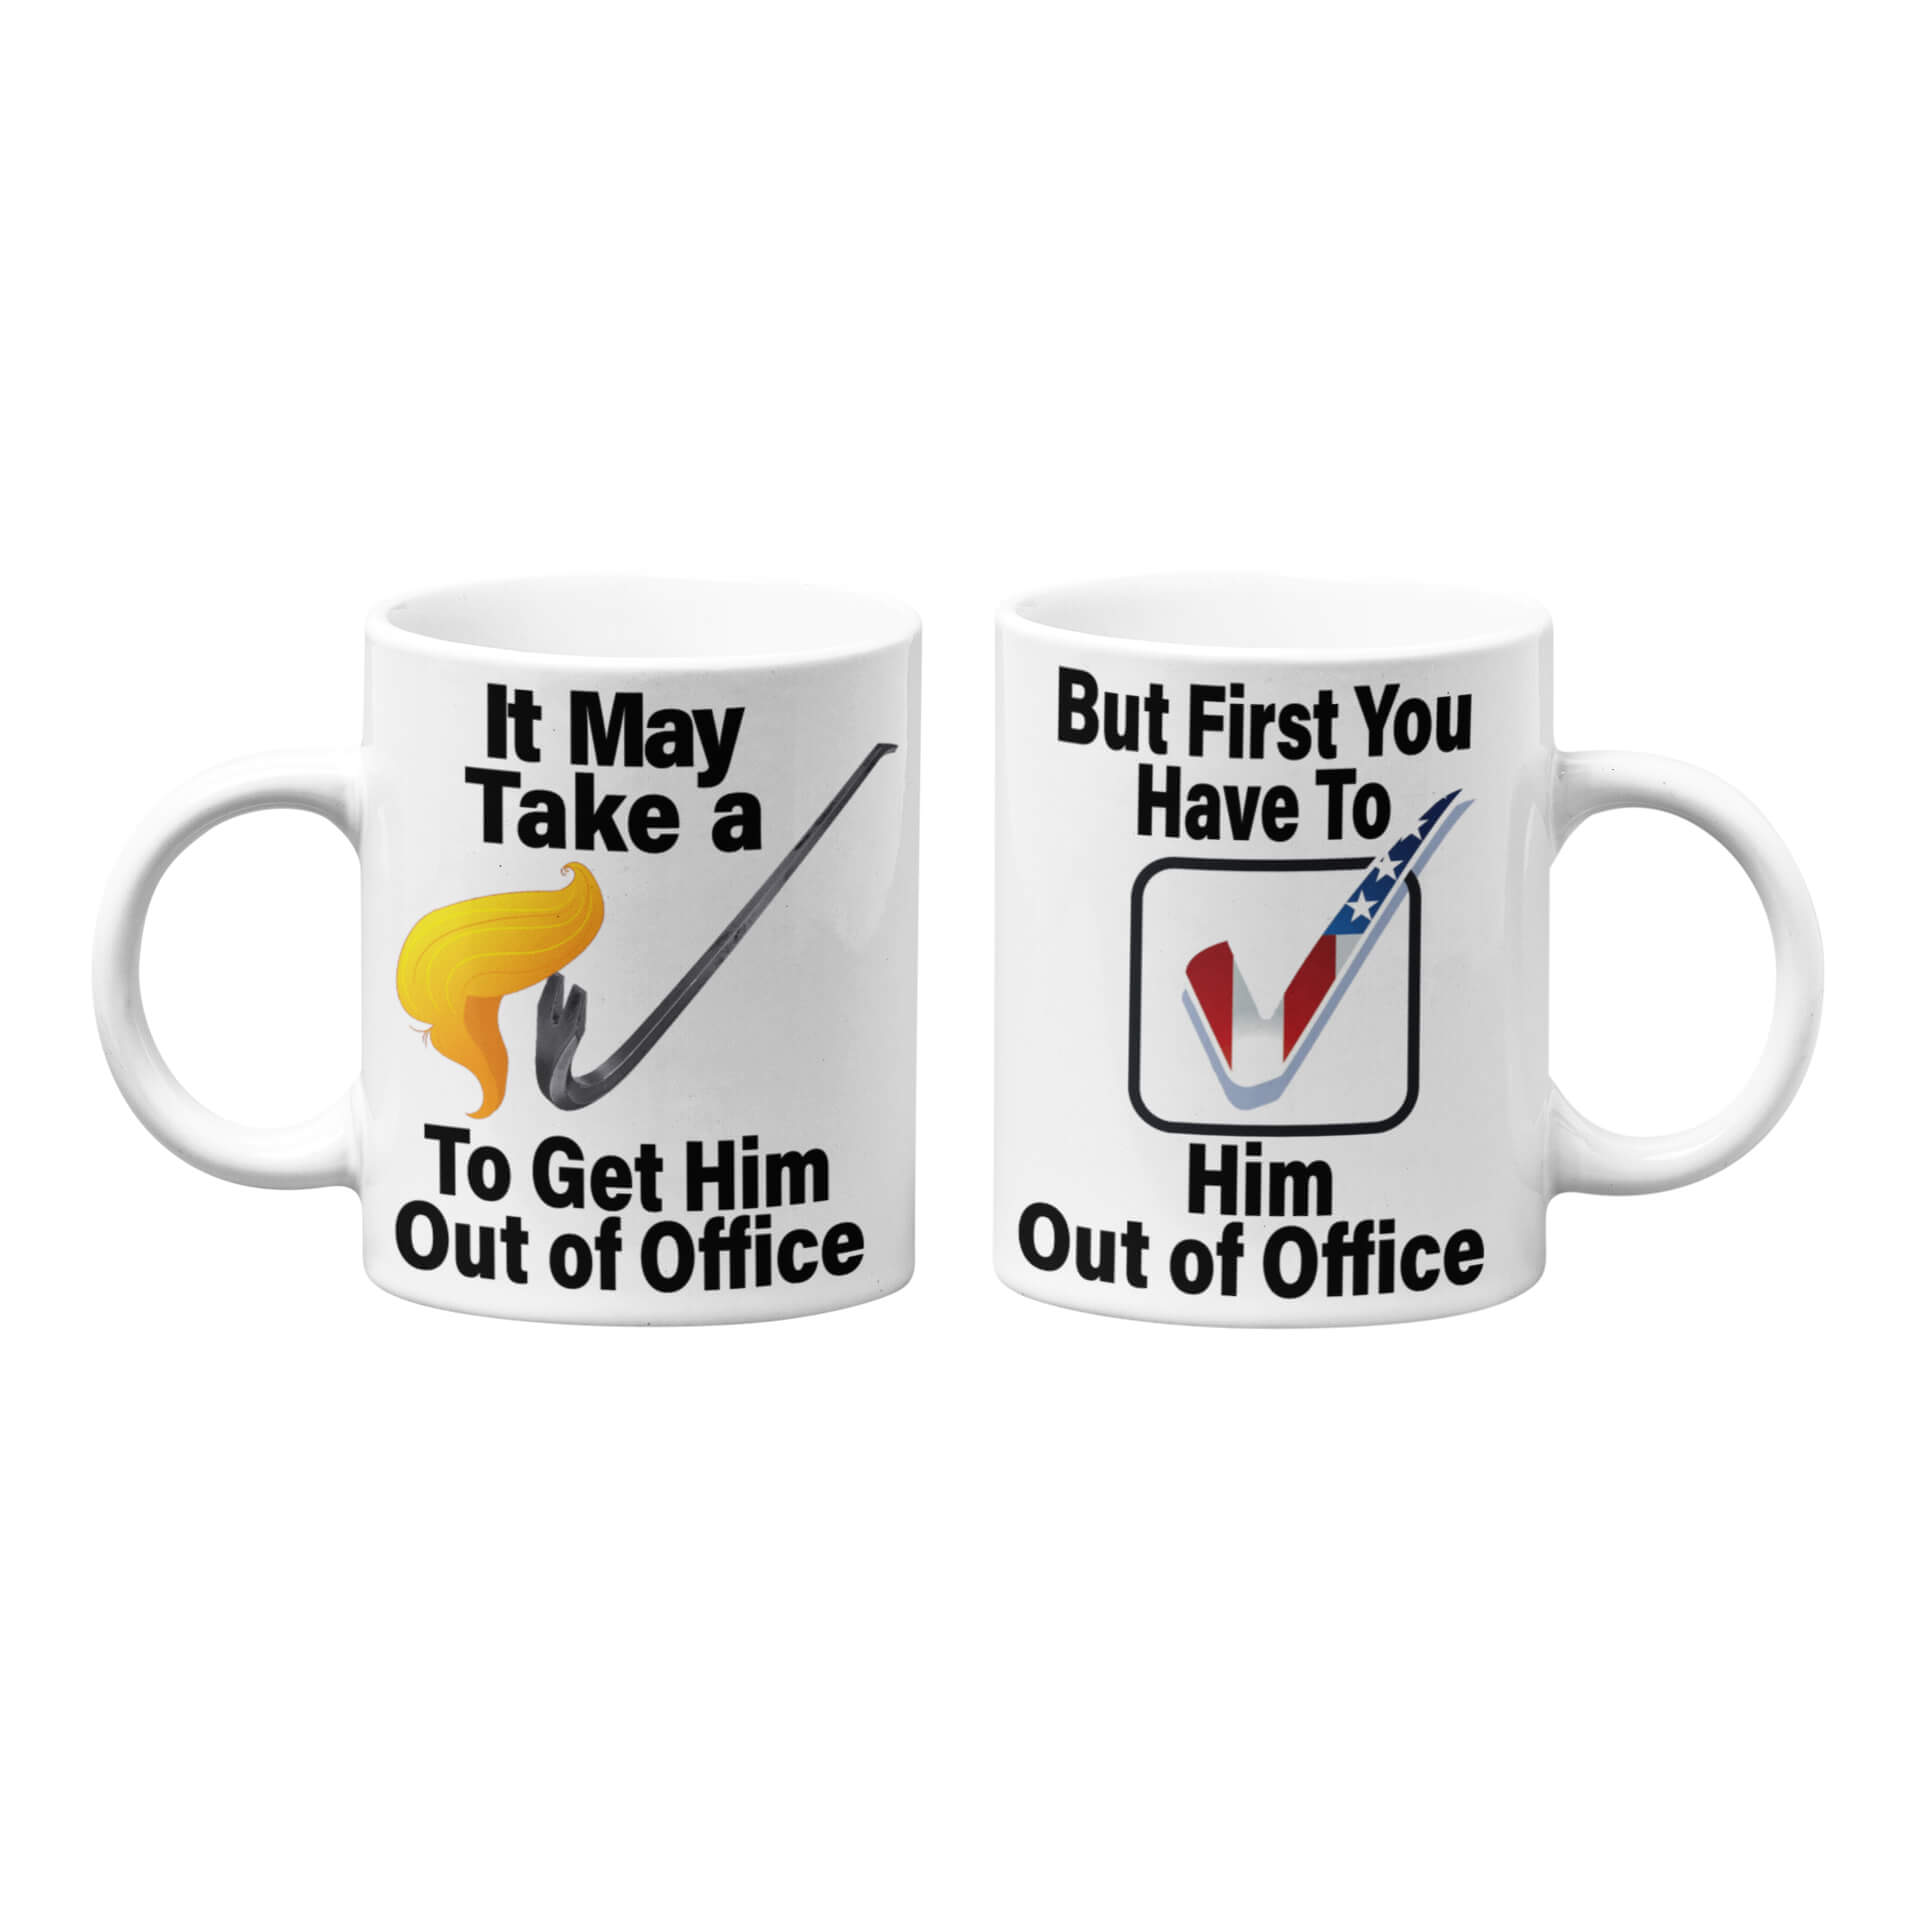 It May Take A Crowbar To Get Him Out Of Office Mug